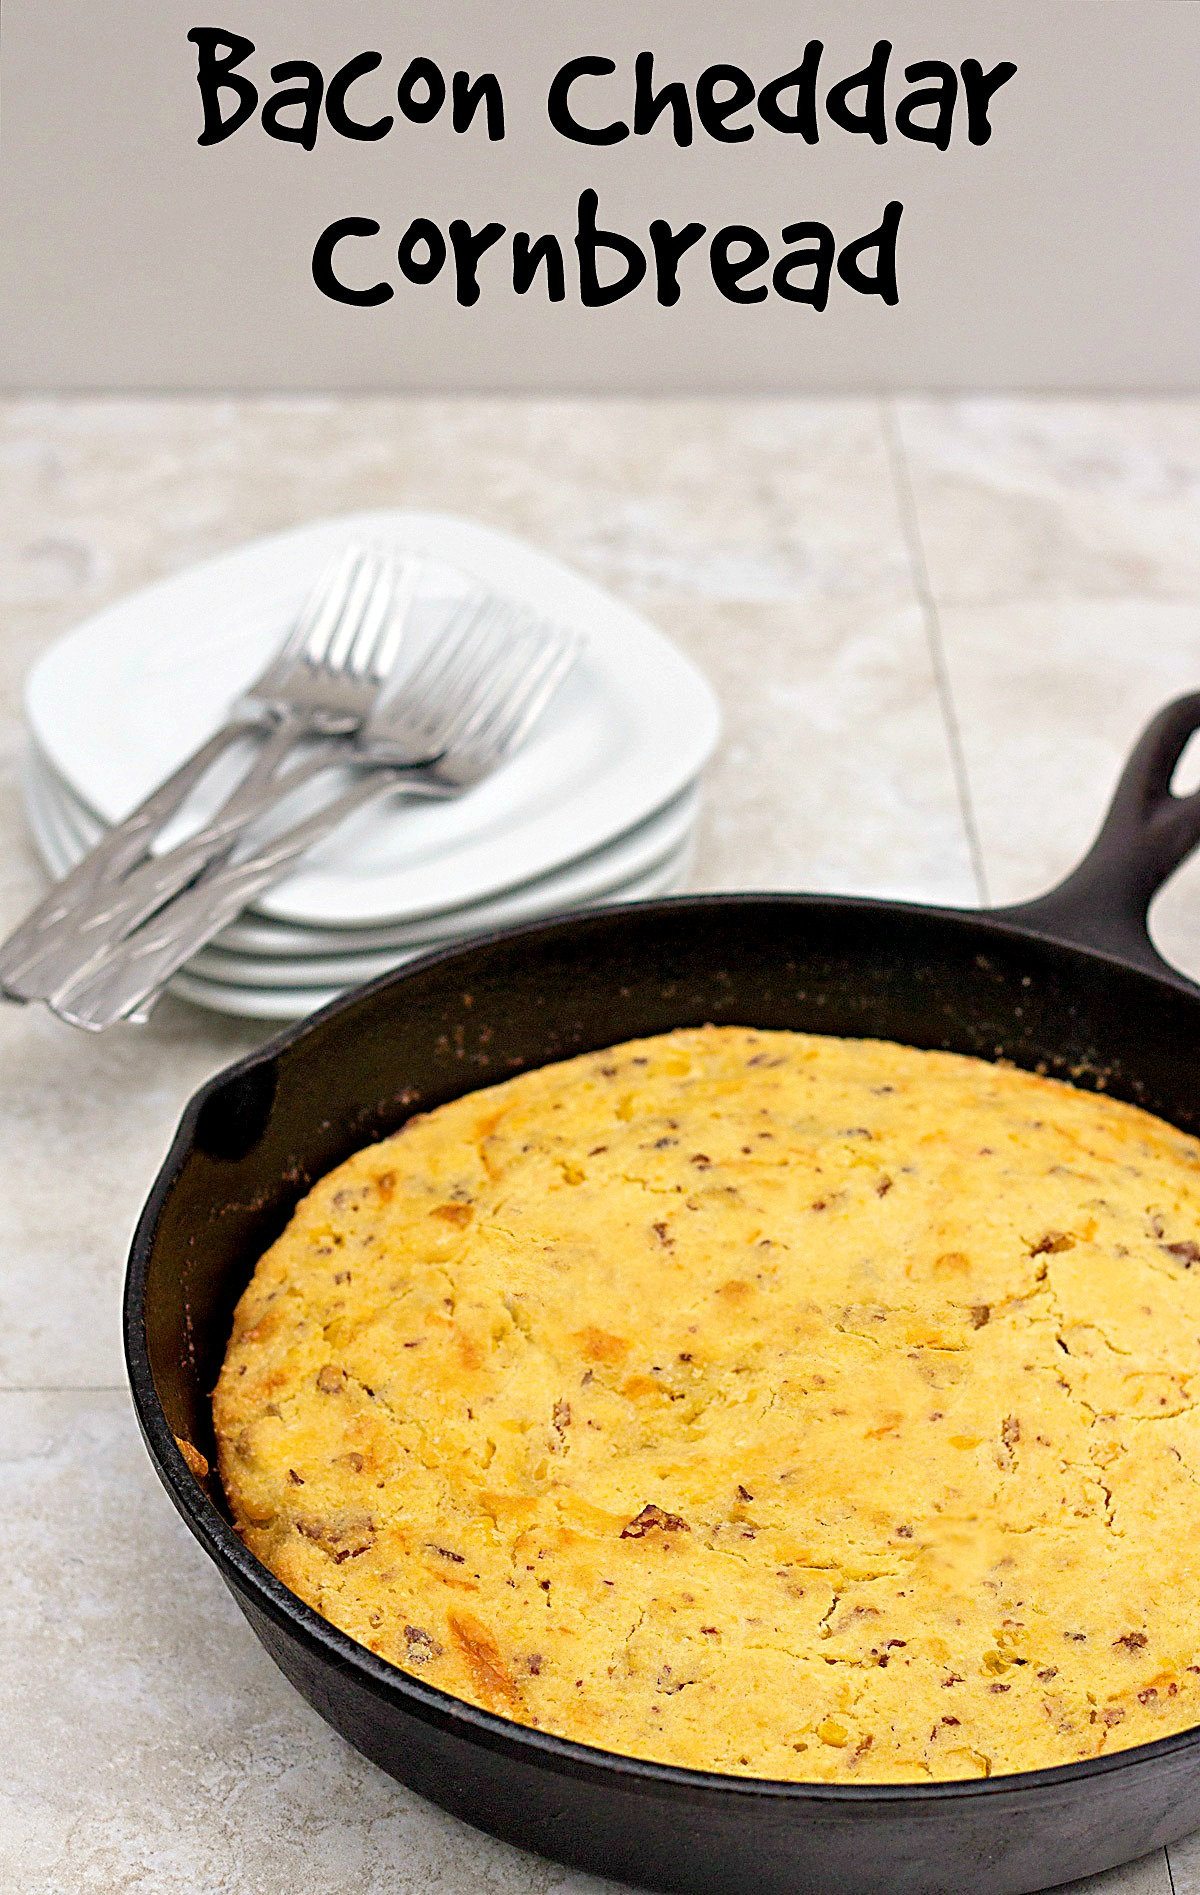 Bacon Cheddar Cornbread Recipe ⋆ Its Yummi